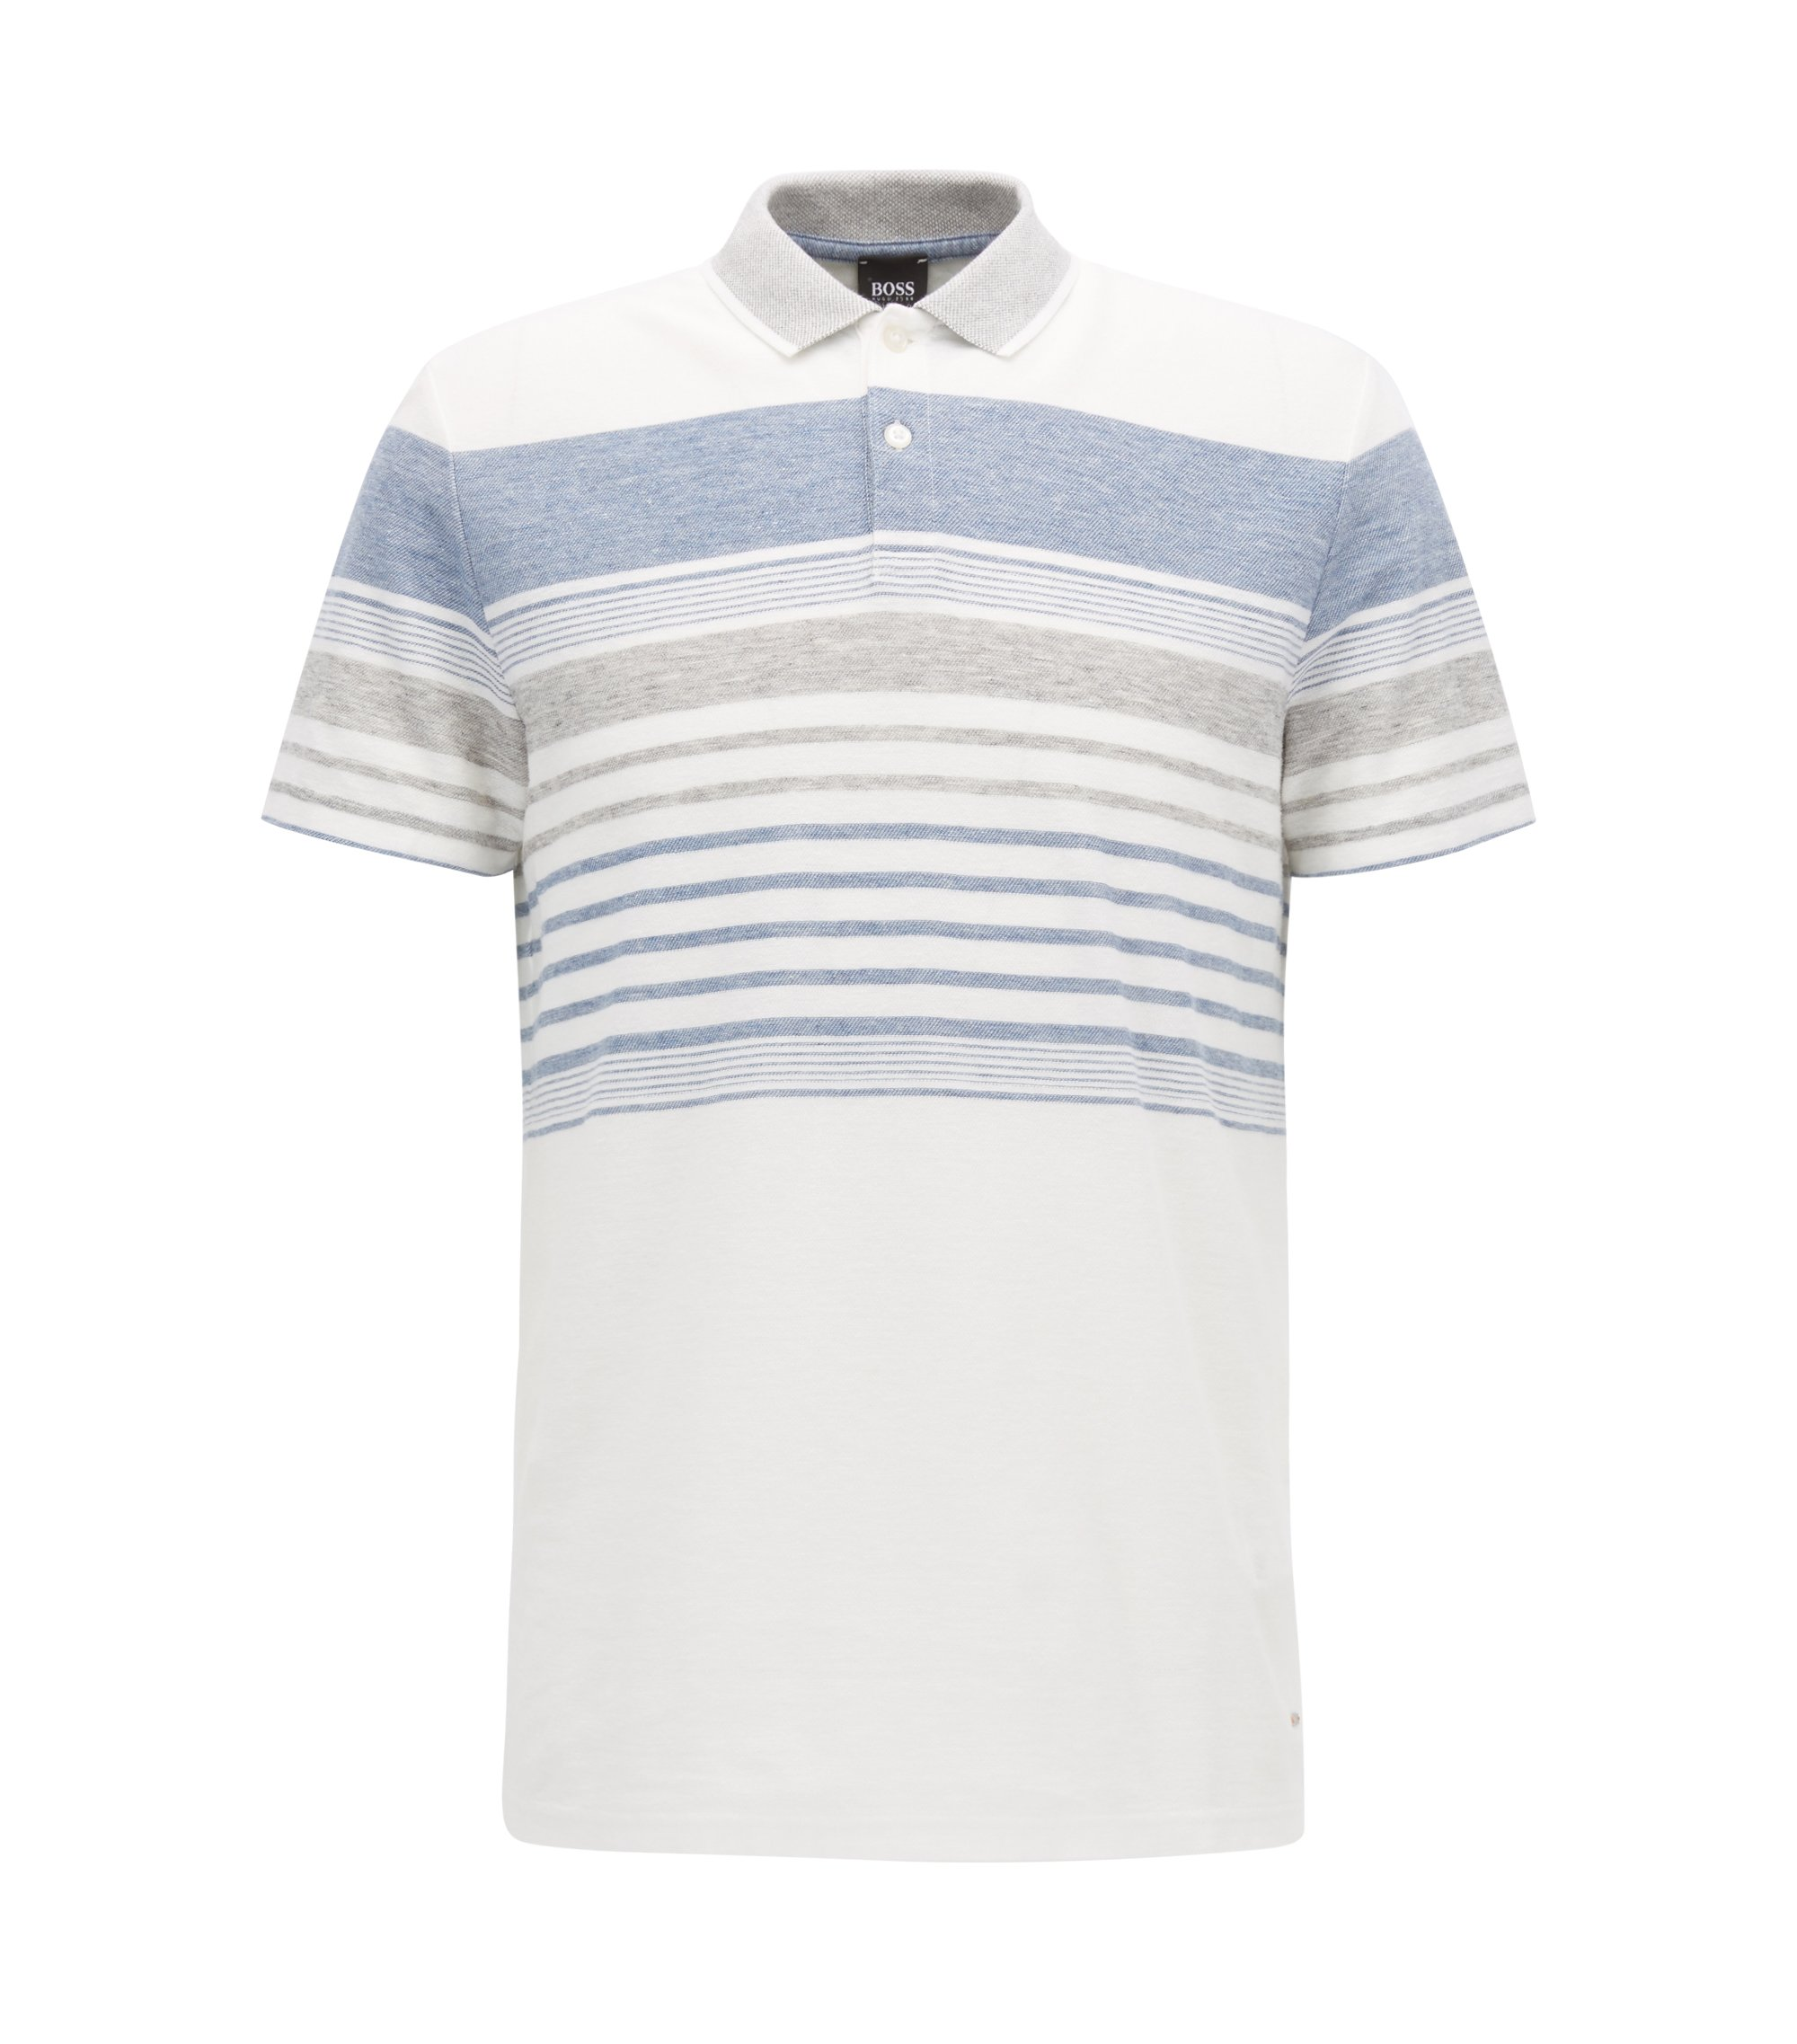 Relaxed-fit melange-striped polo shirt in a cotton-blend jacquard, Natural